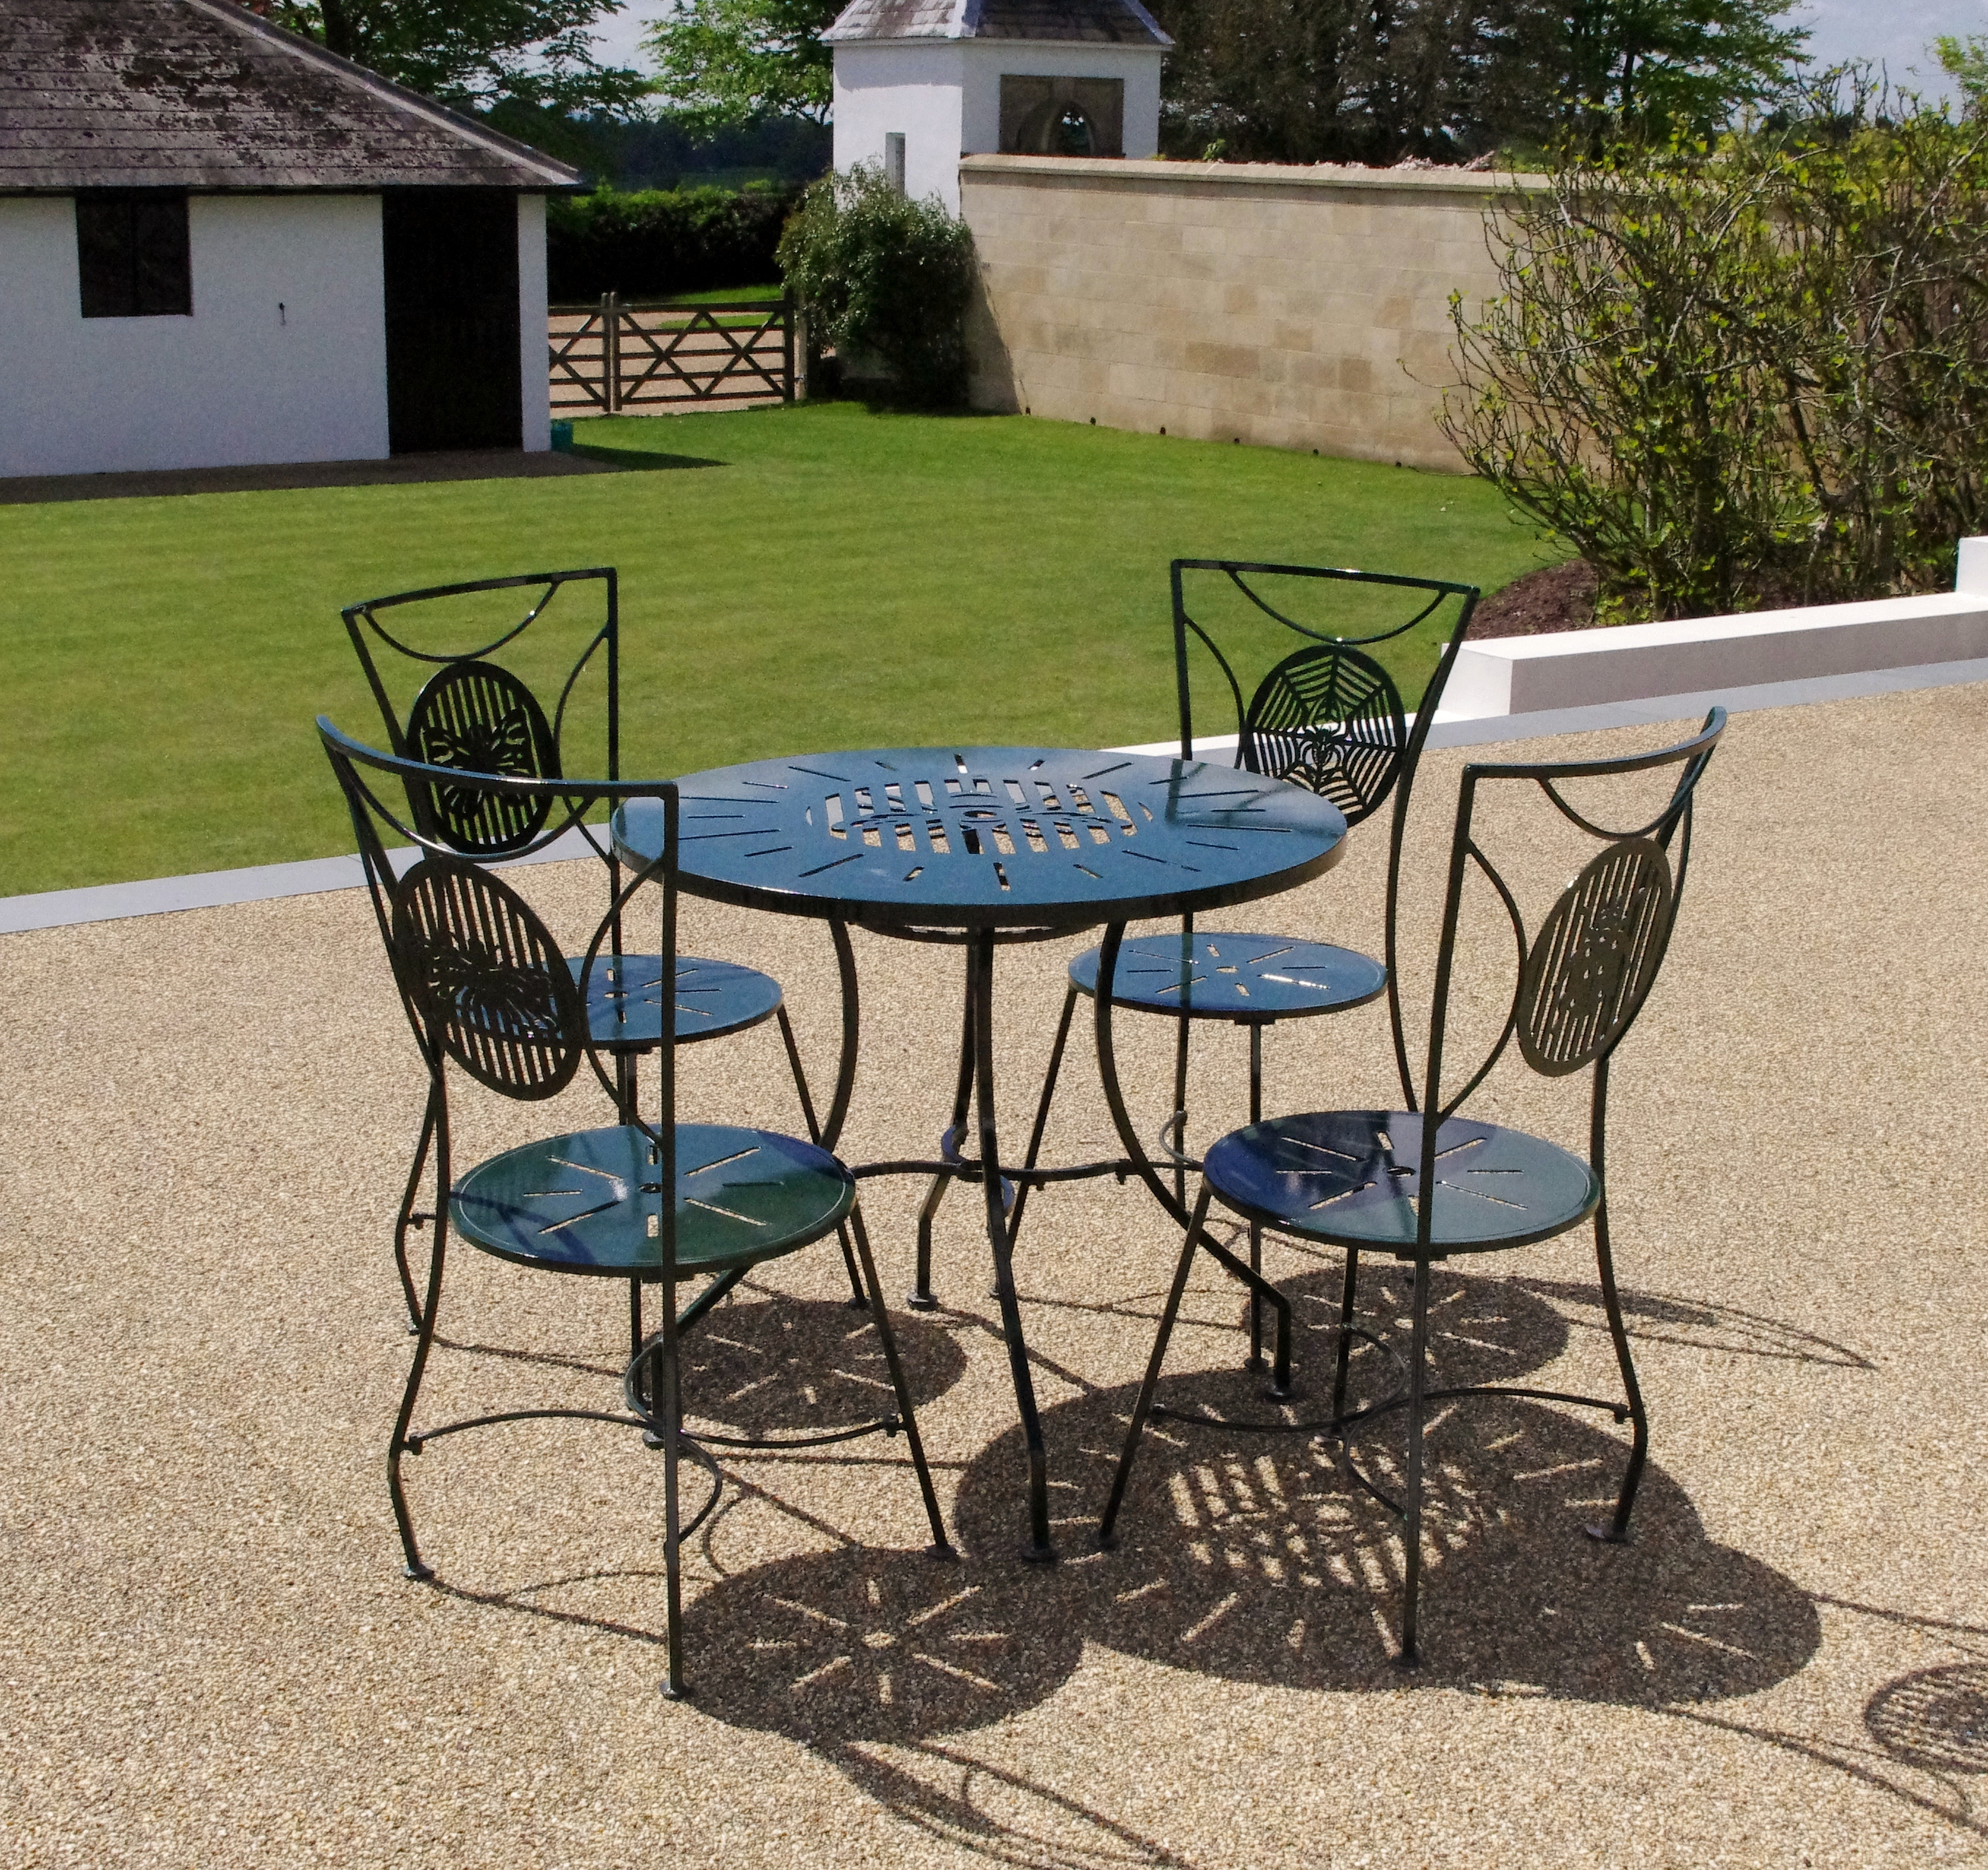 quality versus economy steel garden furniture - Garden Furniture 2014 Uk